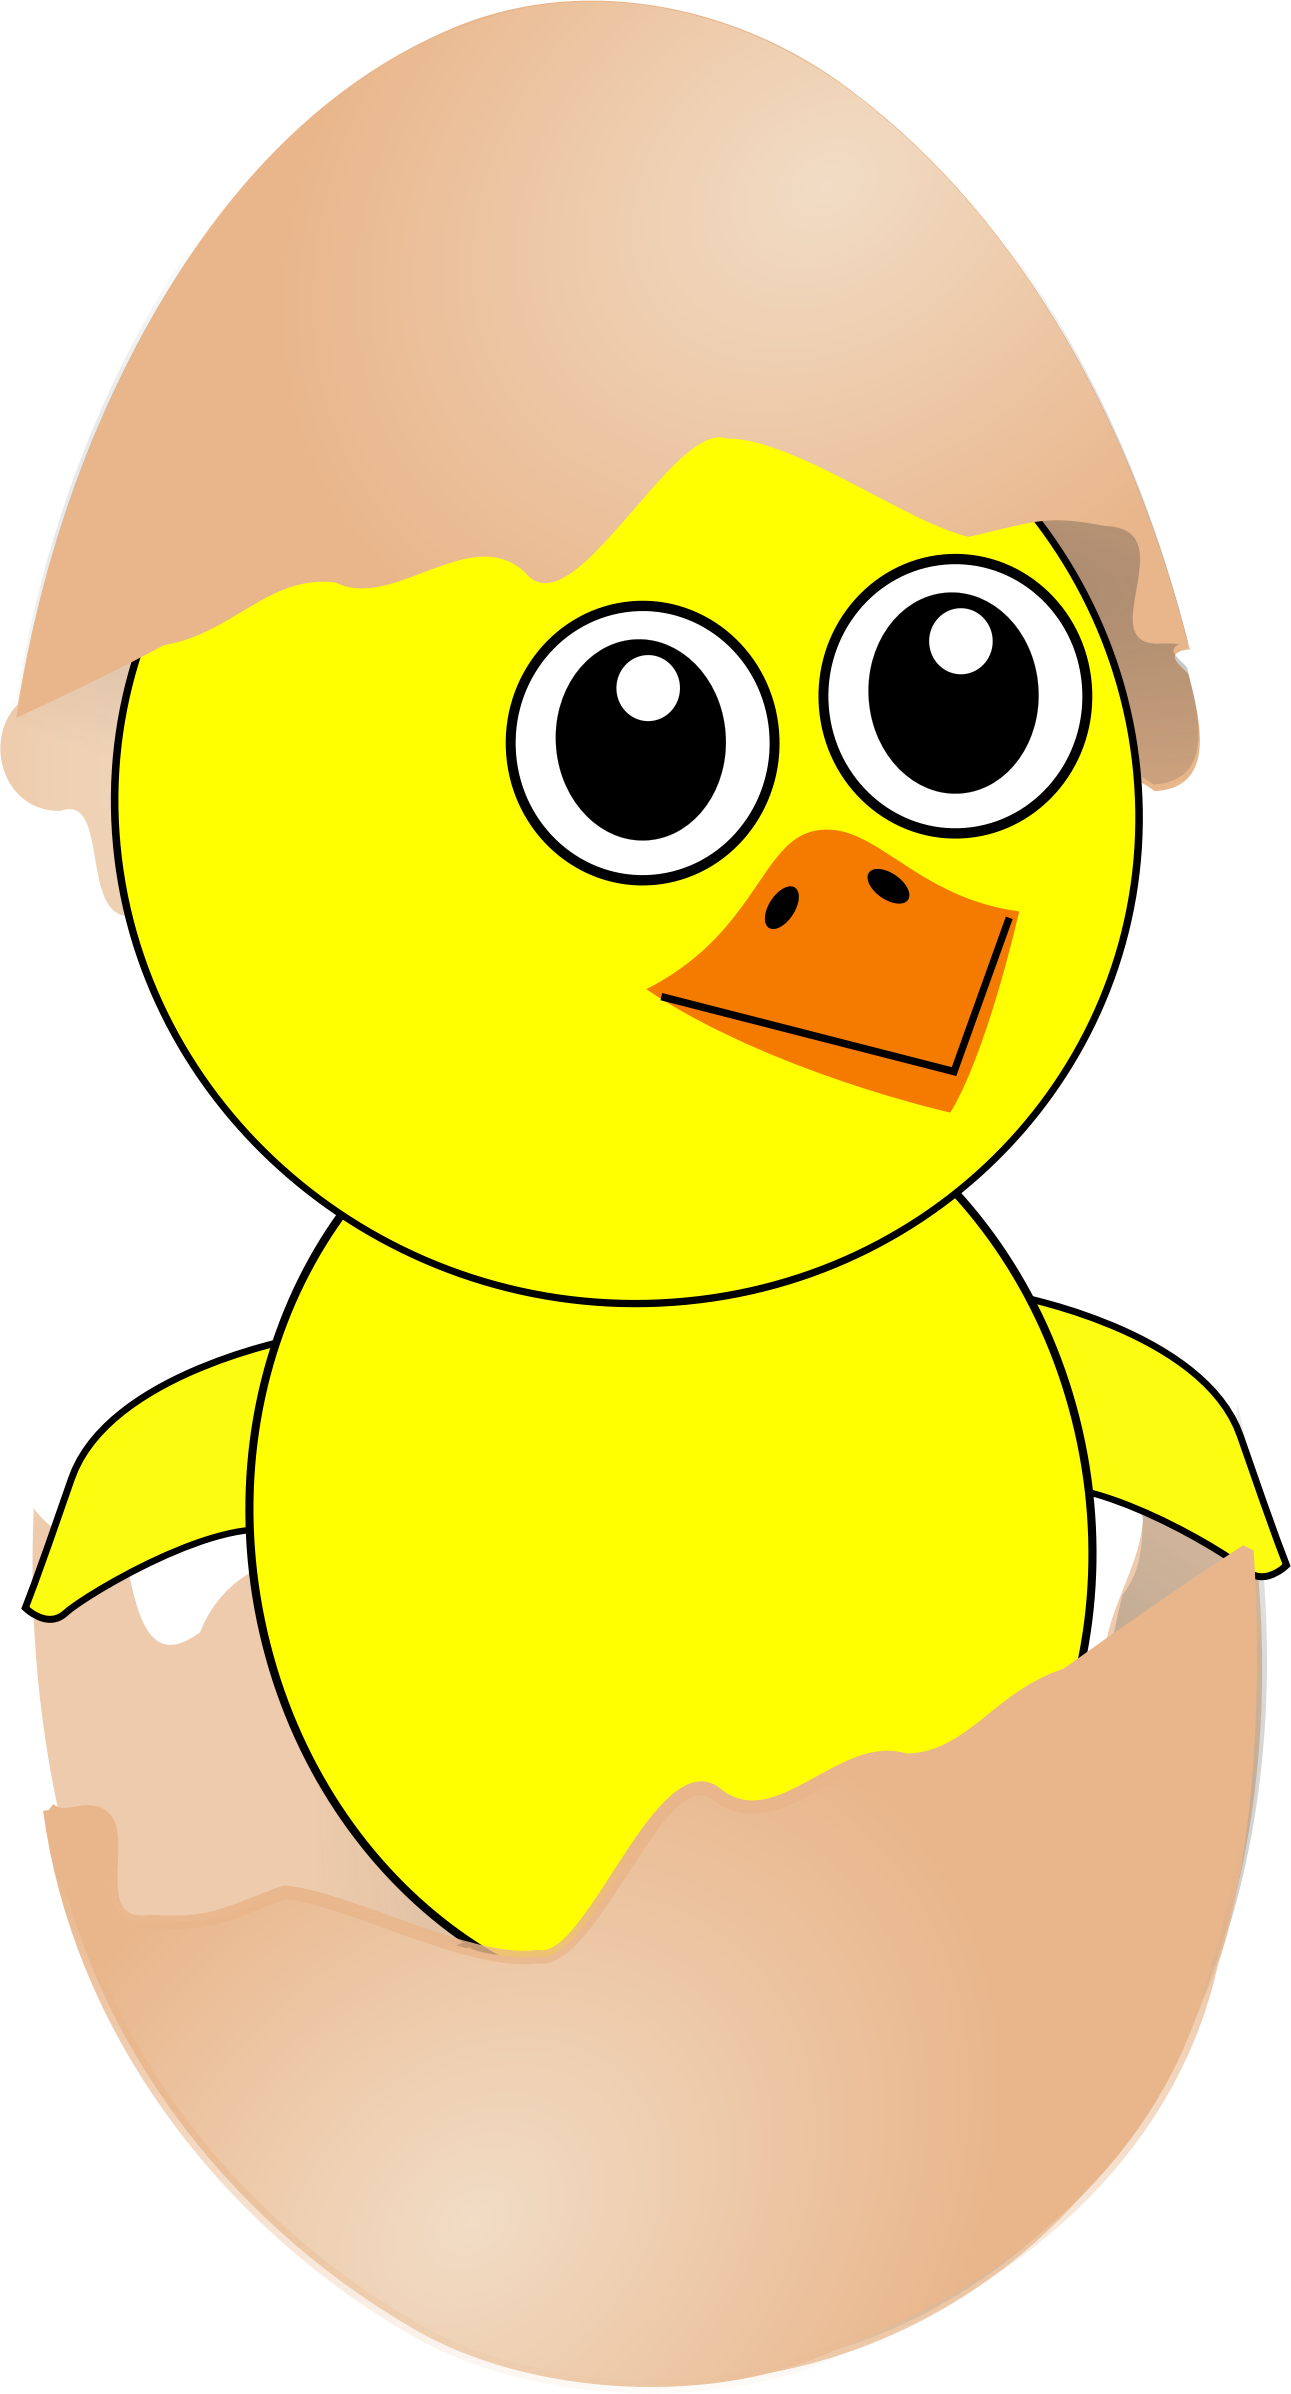 Easter chick cartoon clipart.